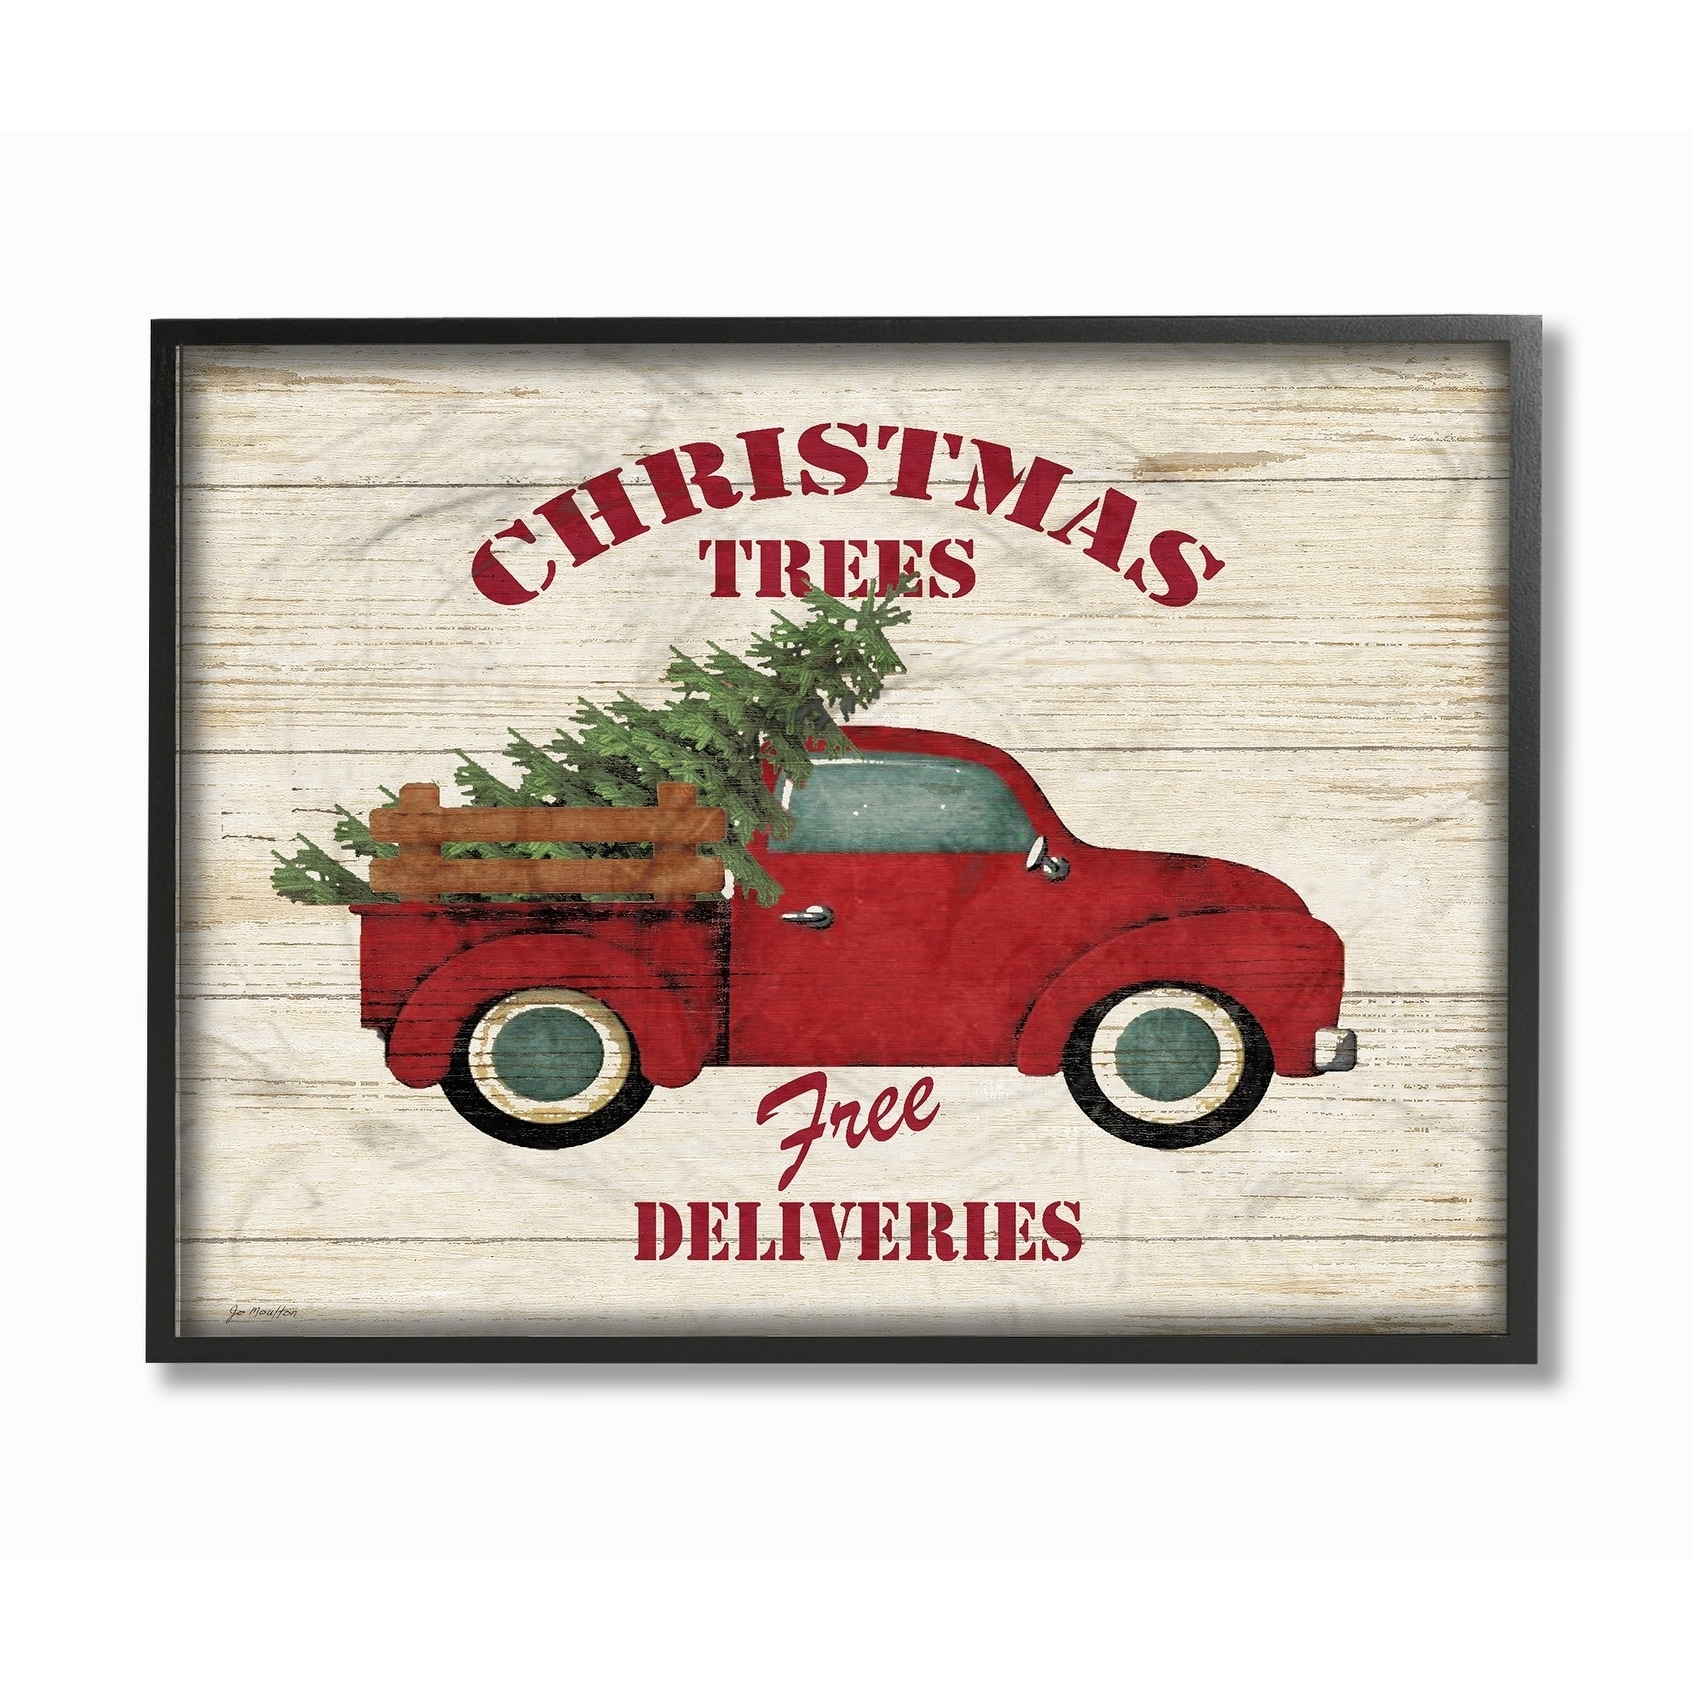 Merry Christmas Vintage Tree Truck Framed Giclee Texture Art